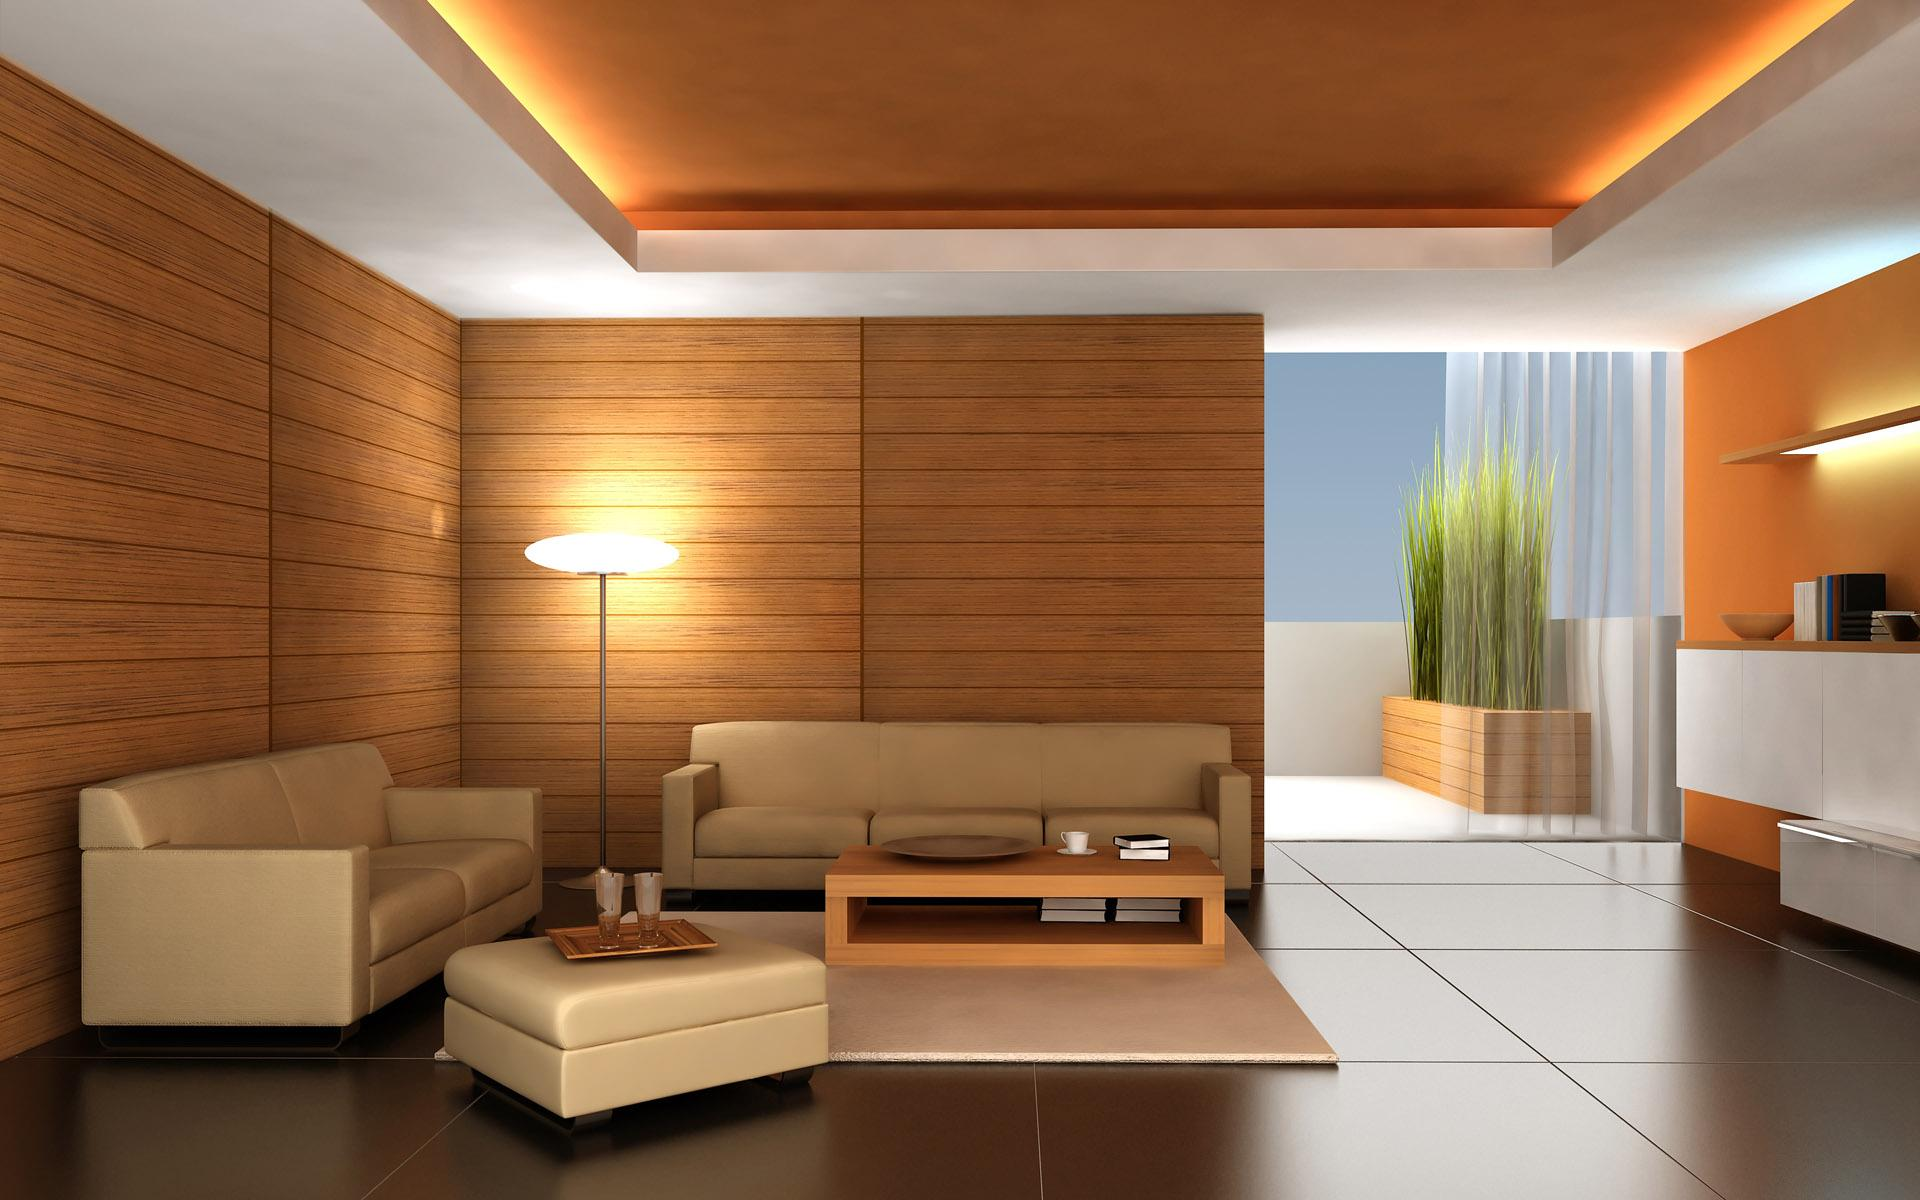 Interior design ideas modern living rooms home for Ceiling designs for living room images